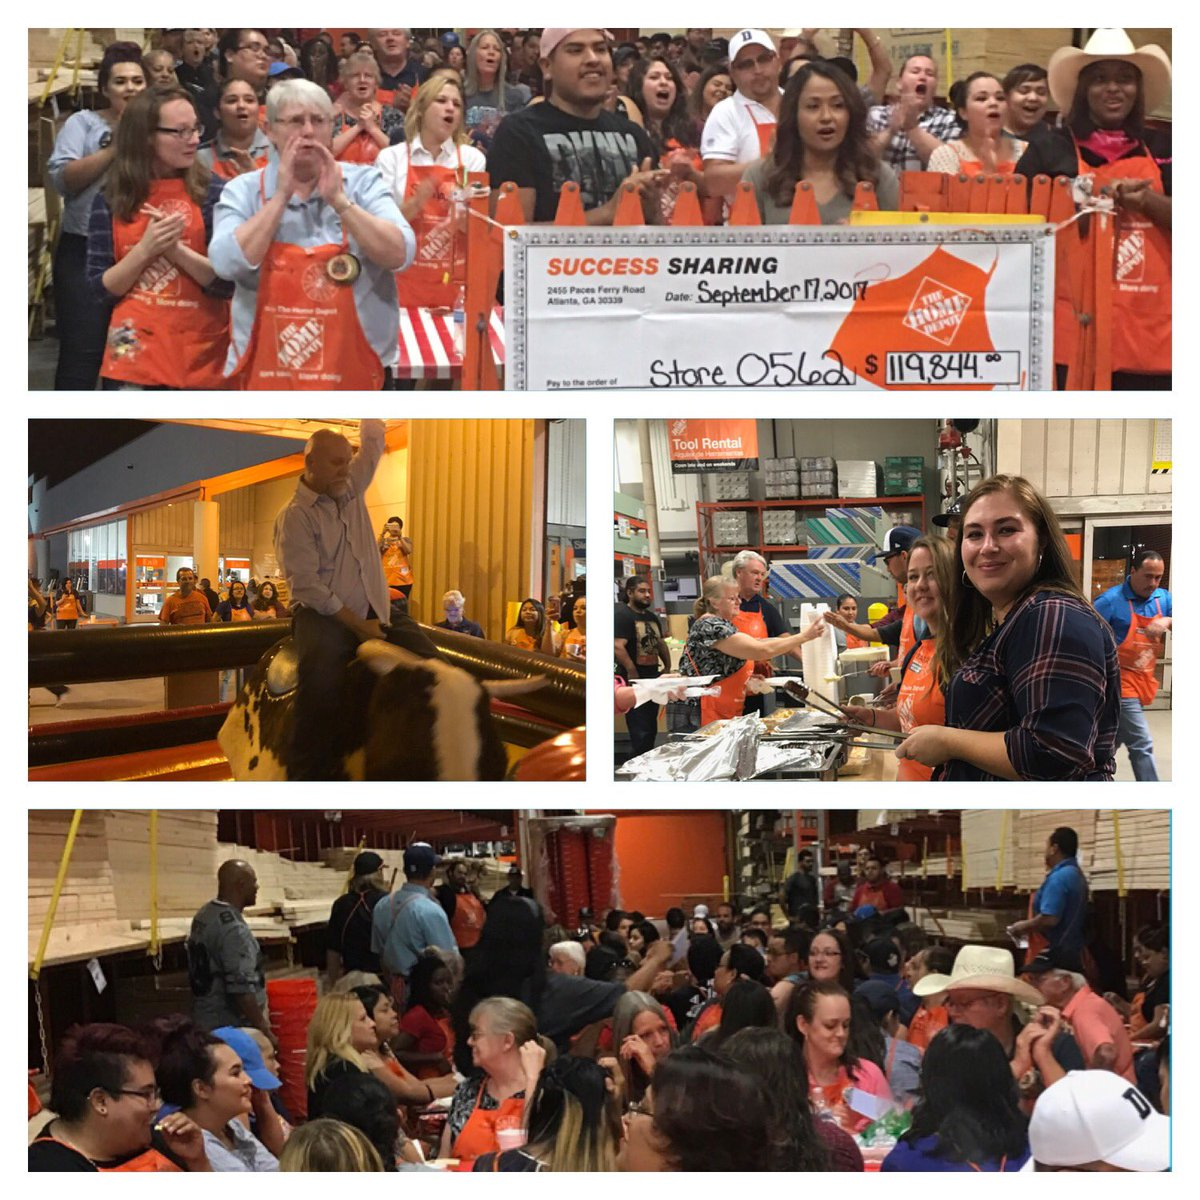 Jason Loftus On Twitter Thank You To All The Associates At The Home Depot Odessa Texas Great Job Team You Rock Lewishom